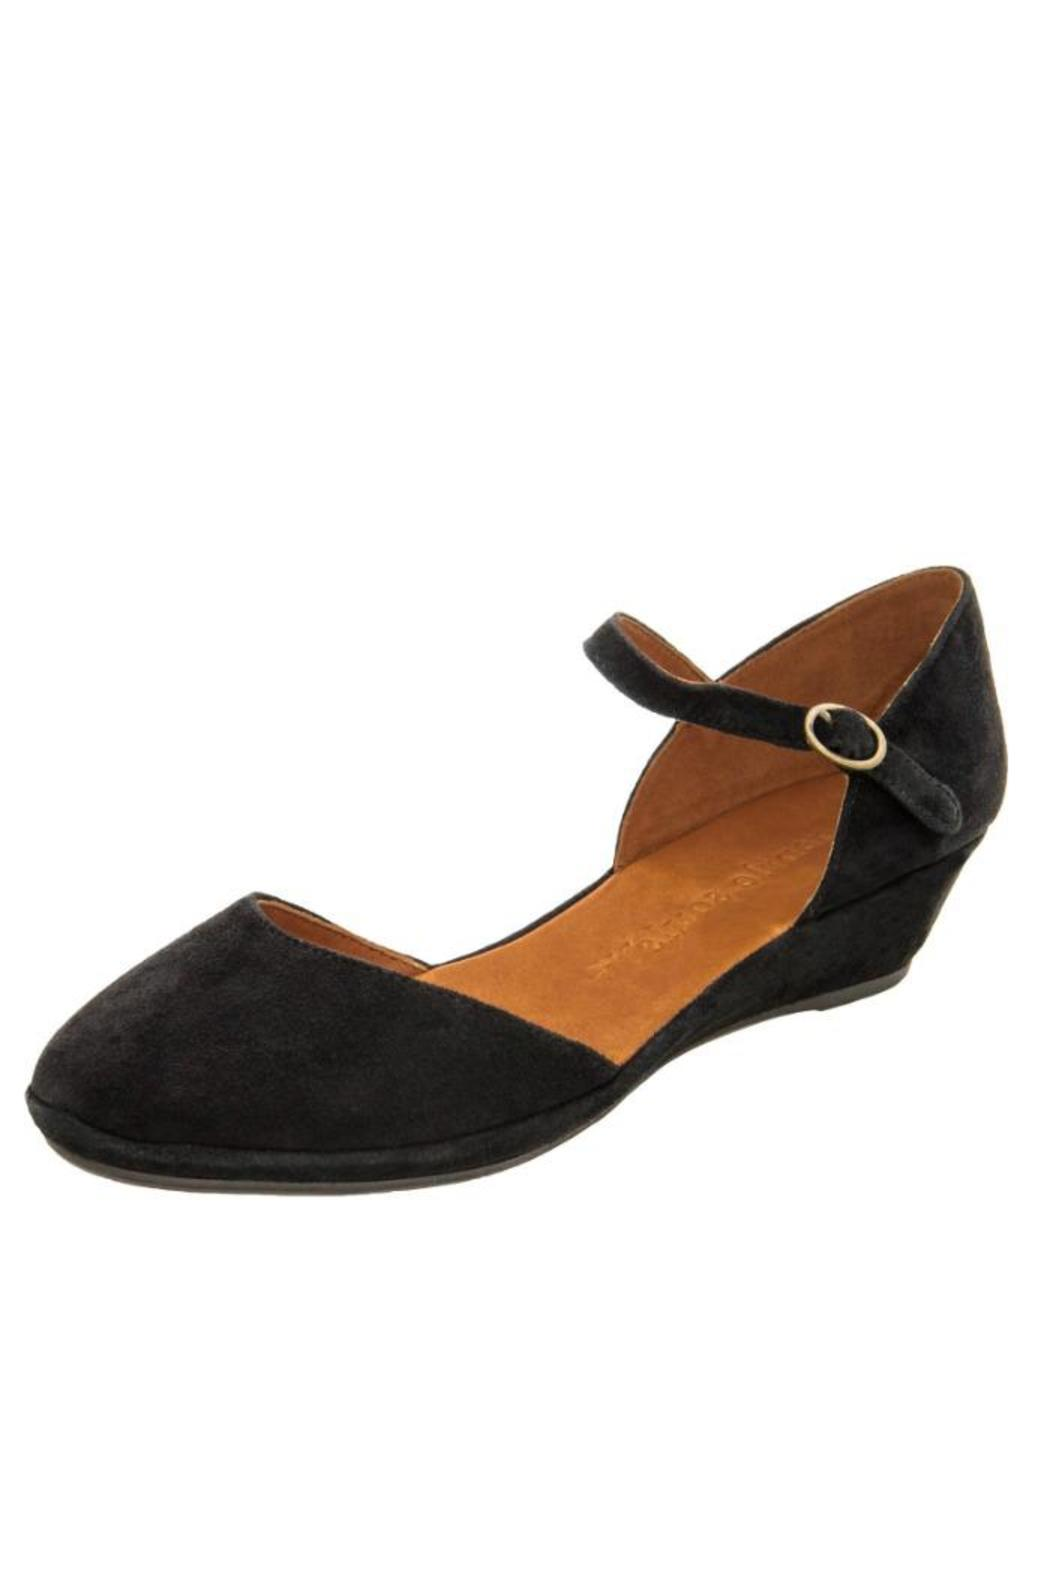 088fb041258 Gentle Souls by Kenneth Cole Noa Star Flat from New Jersey by ROXY ...